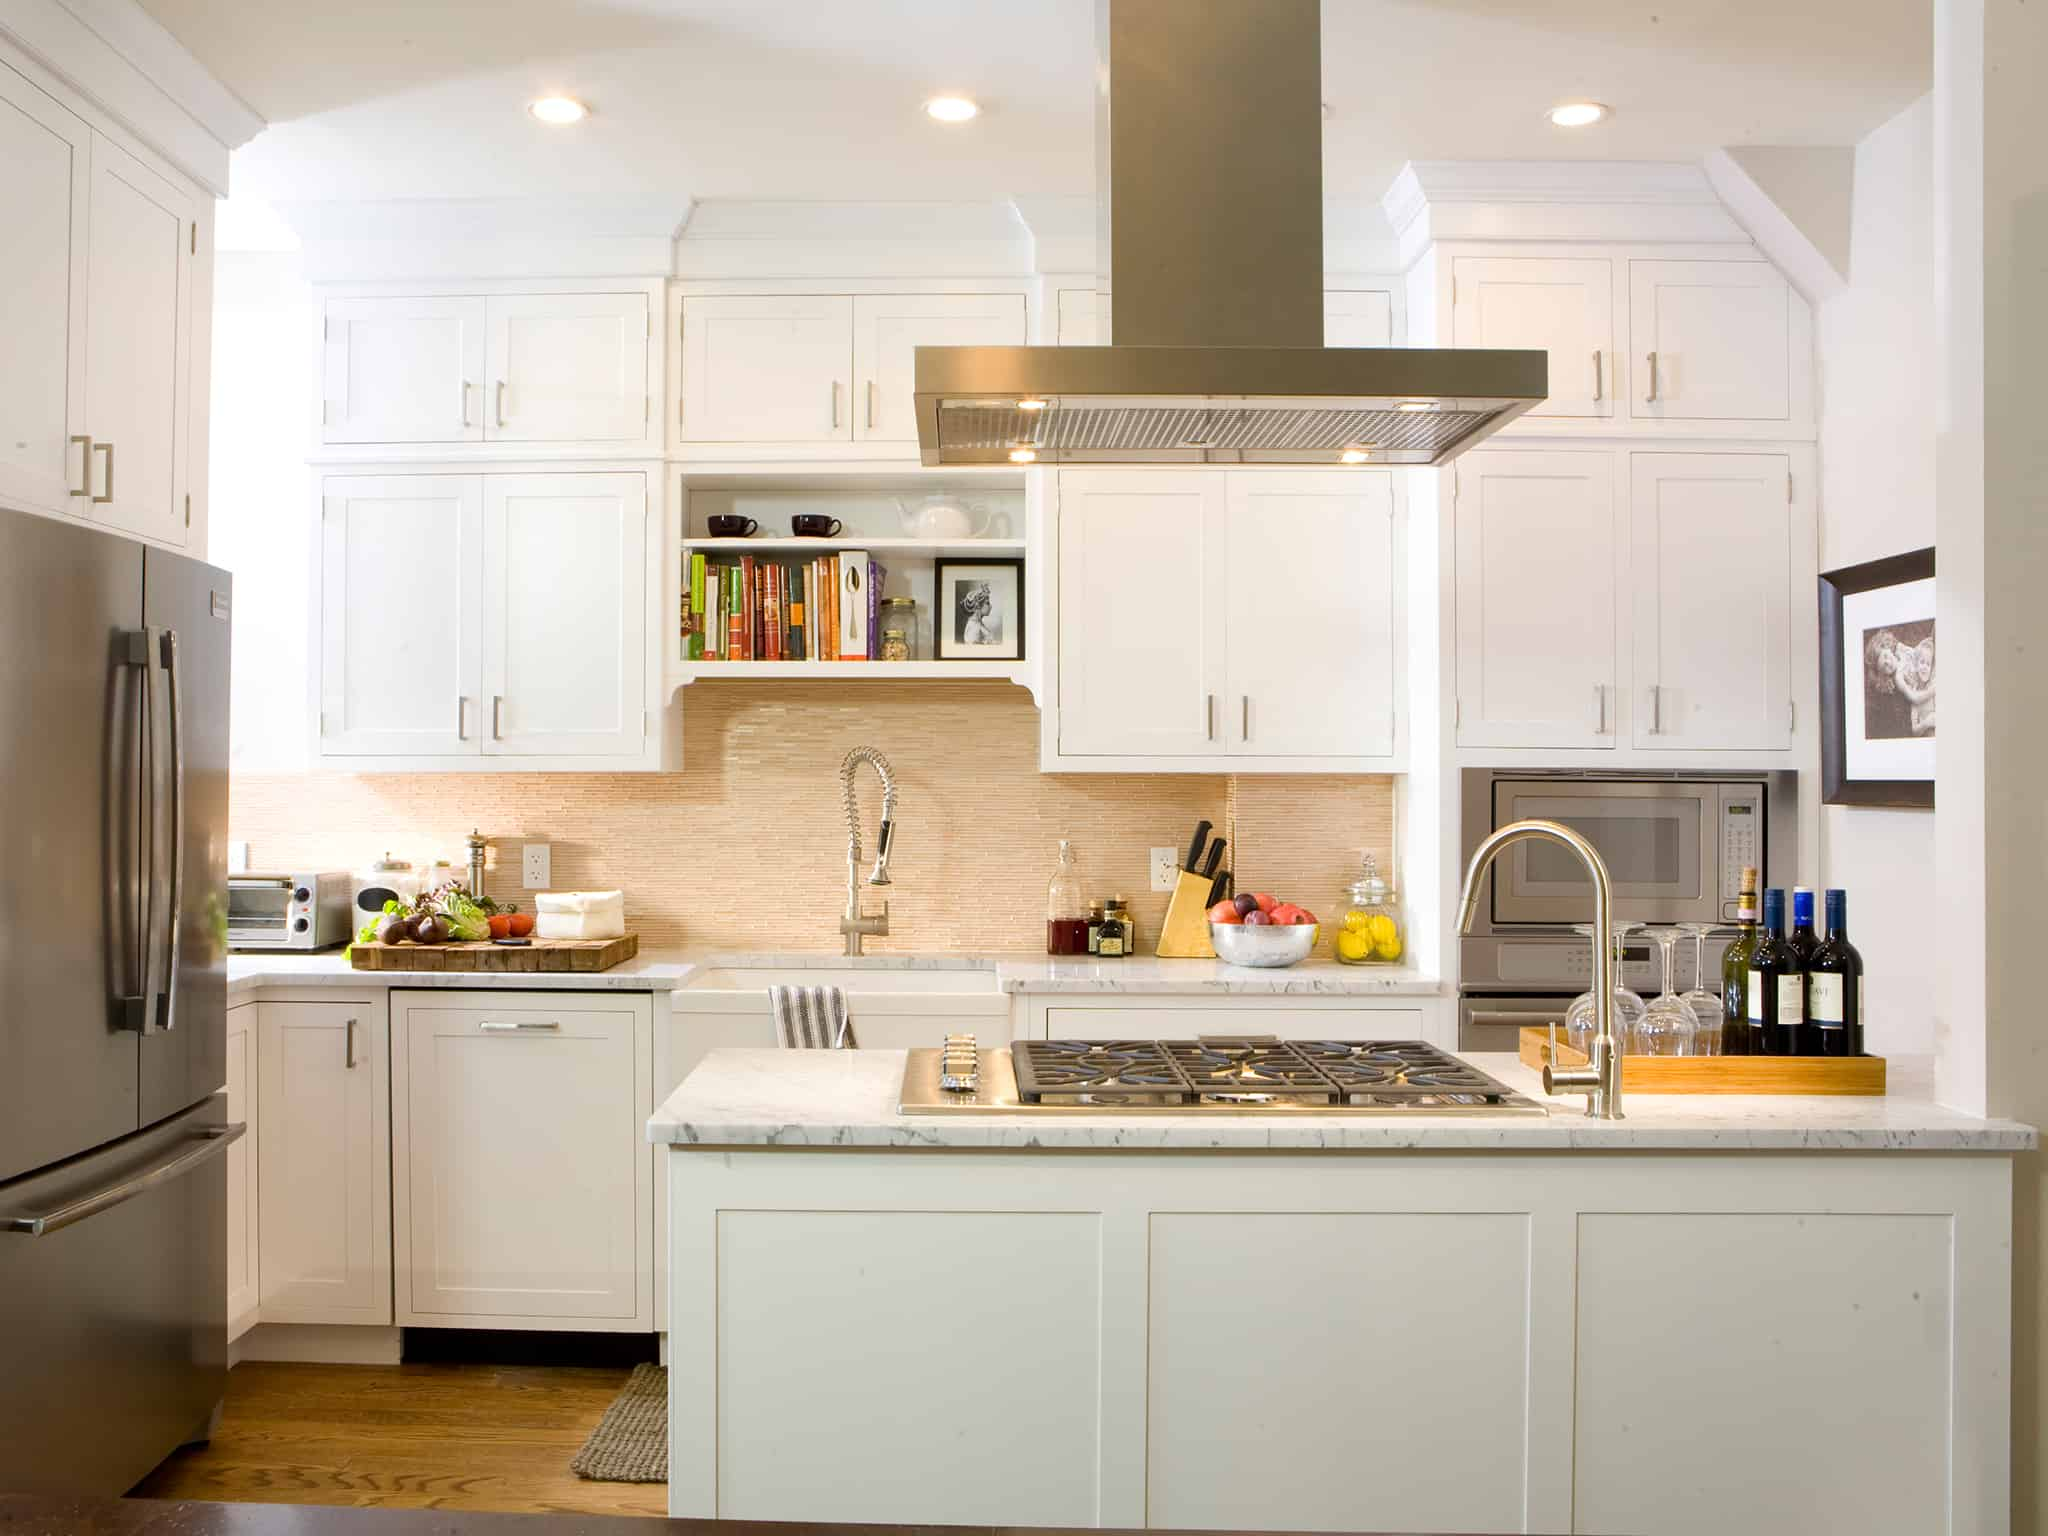 37 bright white kitchens to emulate your own after for My kitchen design style